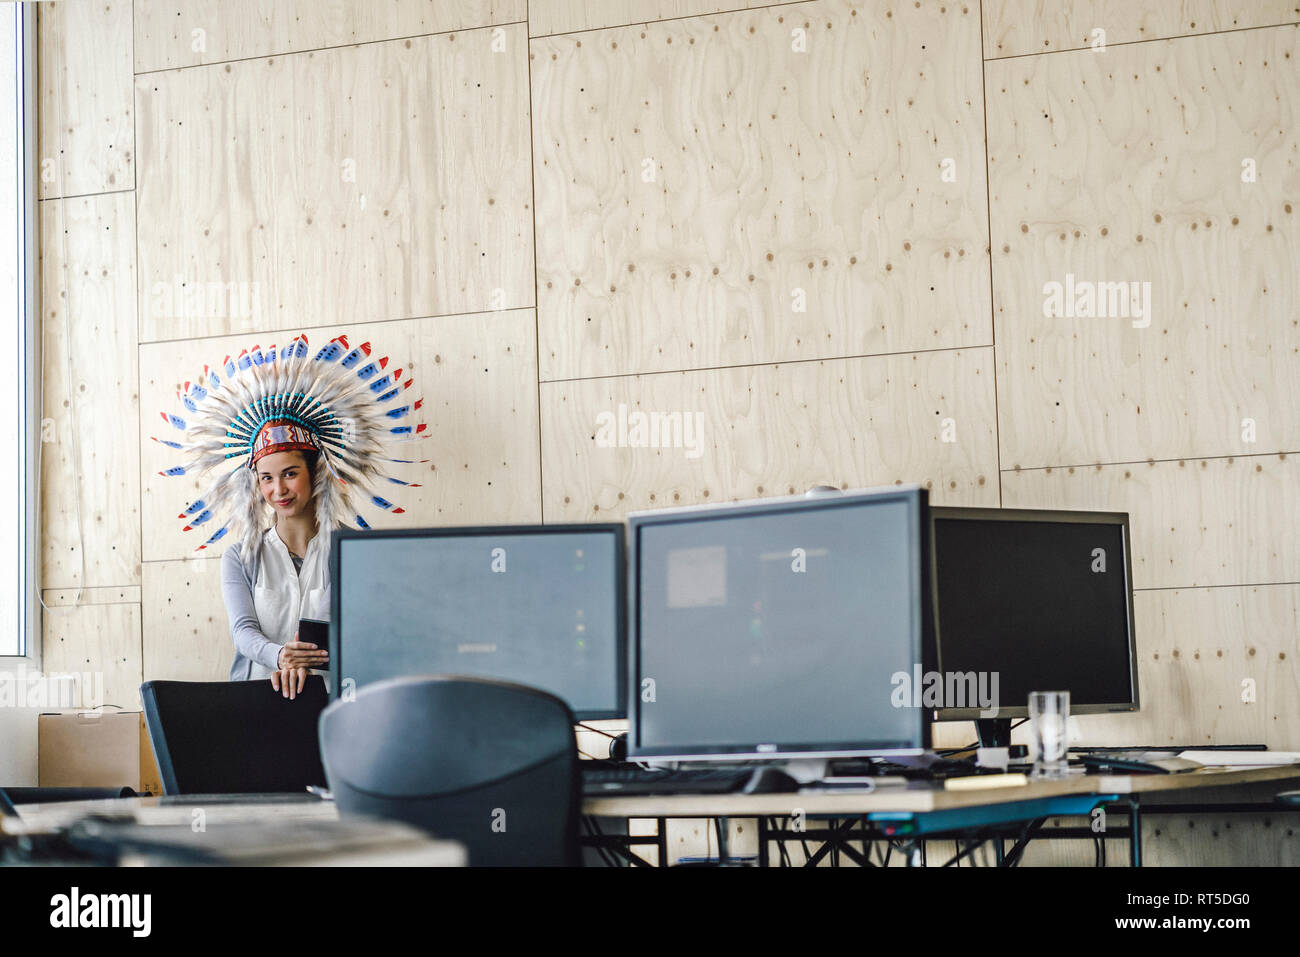 Young woman wearing Indian headdress, standing in office - Stock Image